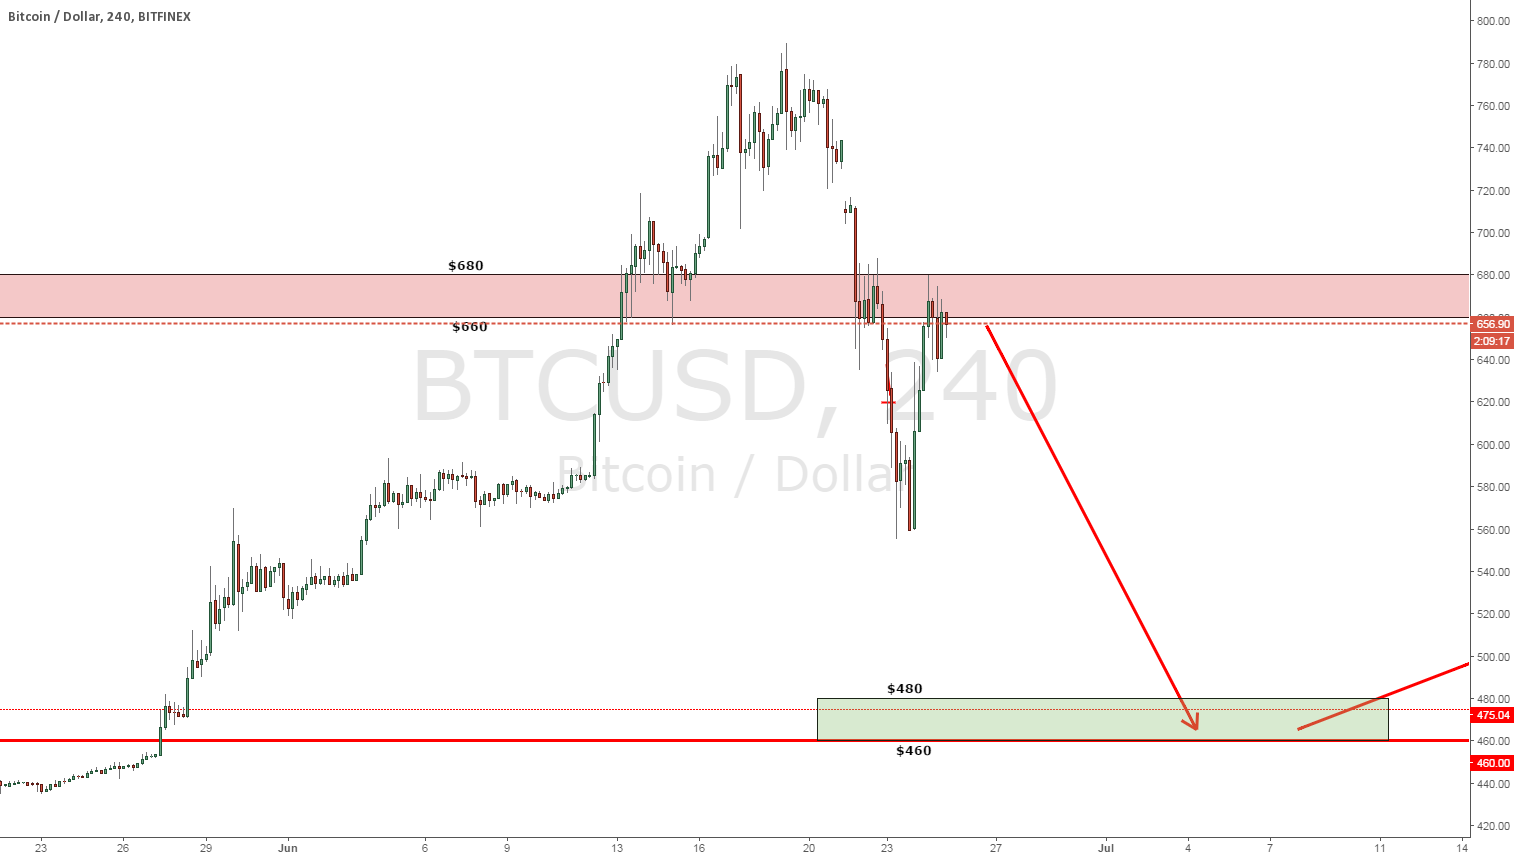 Possible BTC levels on the H4 chart